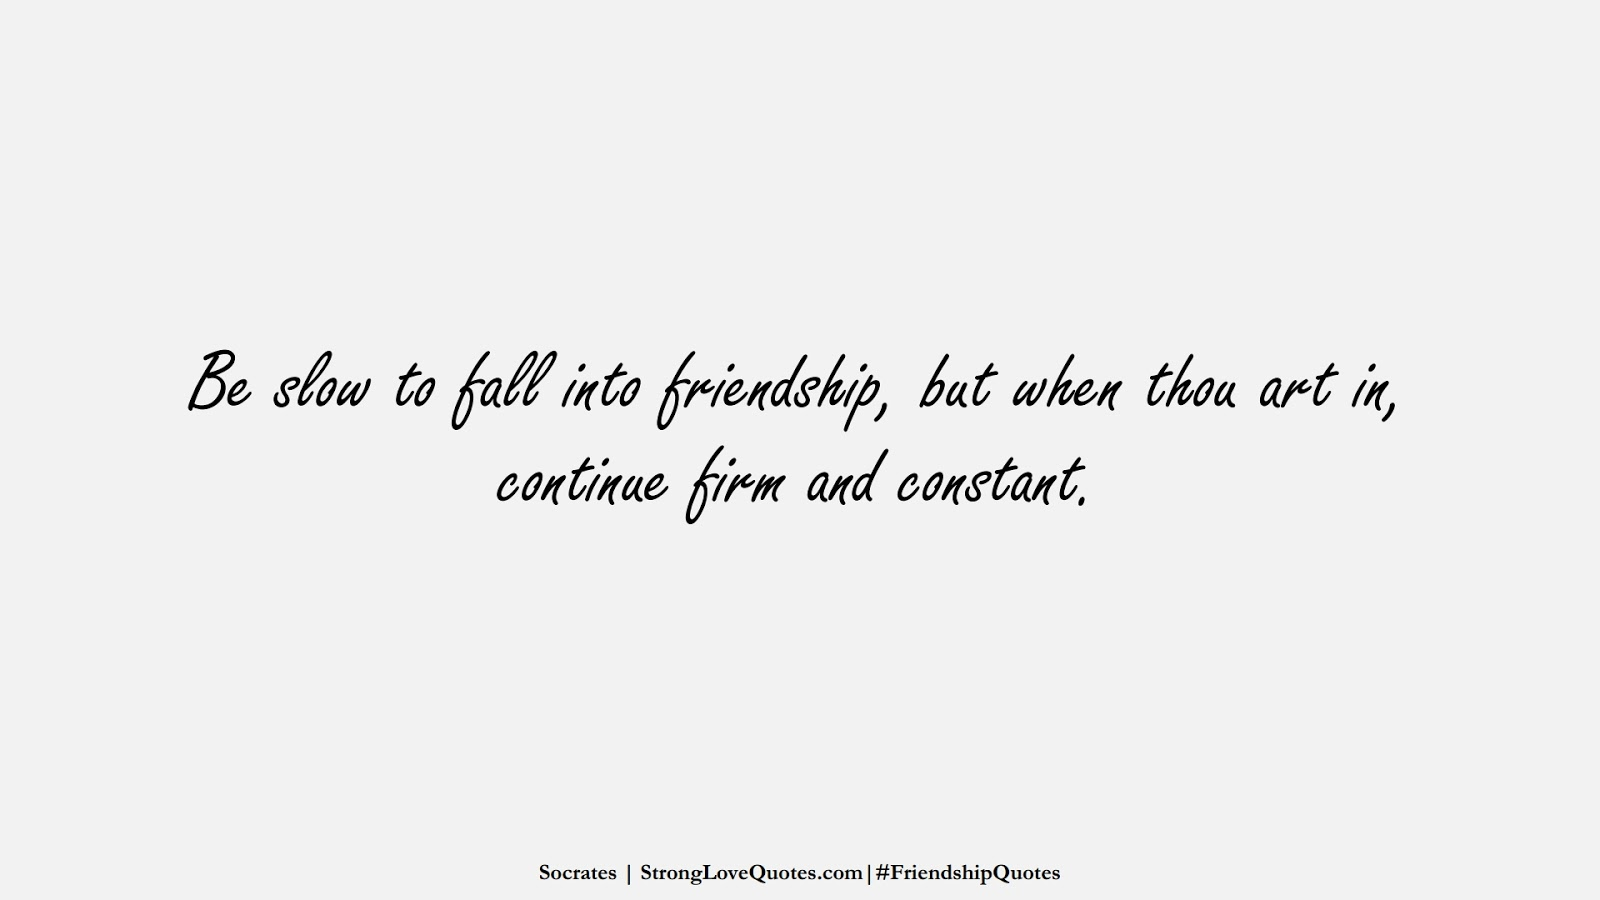 Be slow to fall into friendship, but when thou art in, continue firm and constant. (Socrates);  #FriendshipQuotes